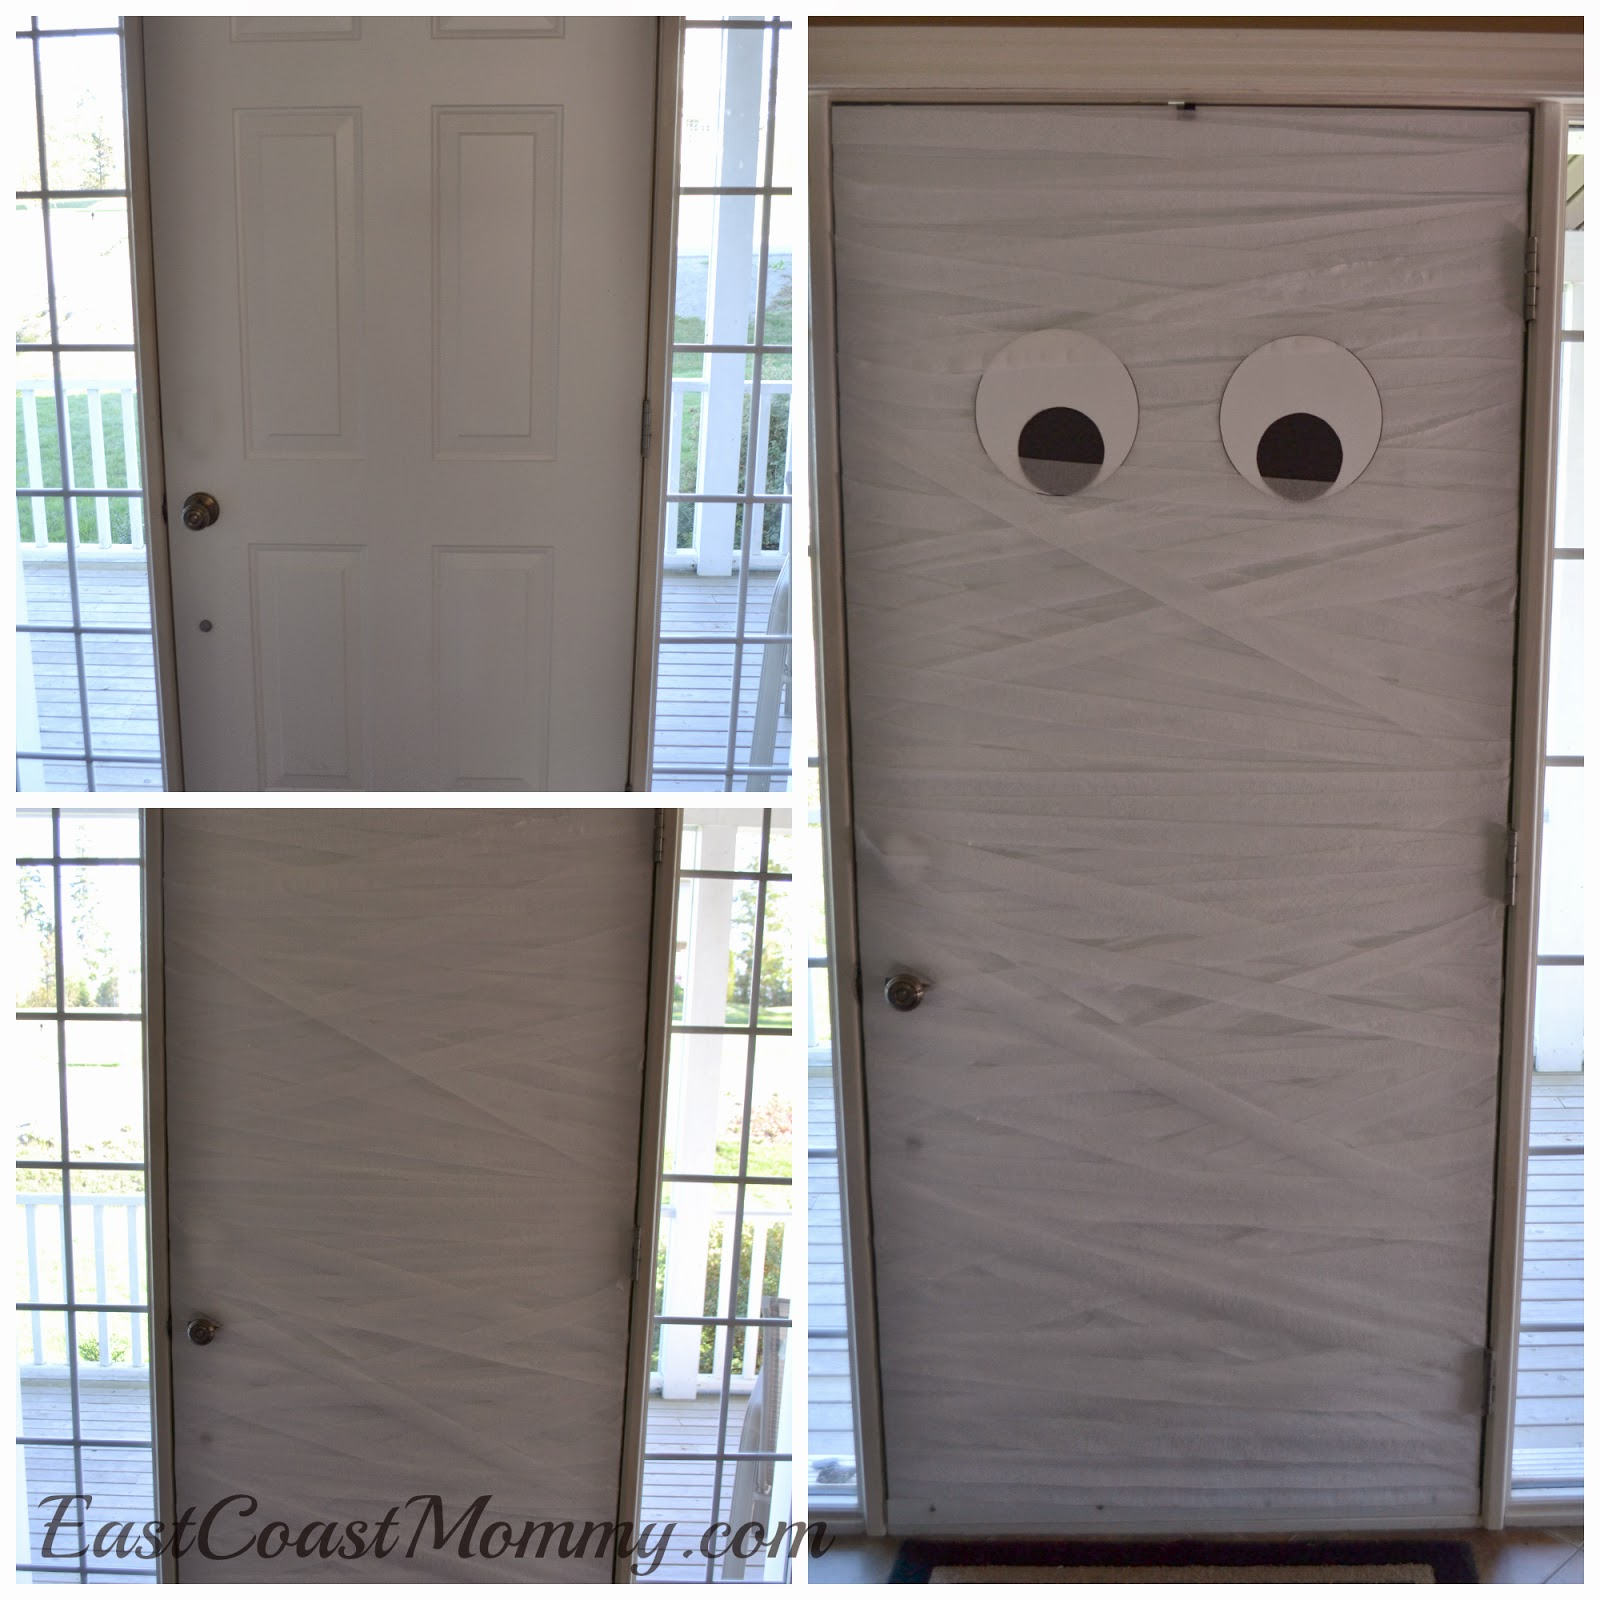 Finish the door by adding eyes made from white and black card stock. Make sure to put a little of the eyes under the streamers to add depth. & East Coast Mommy: Mummy Door